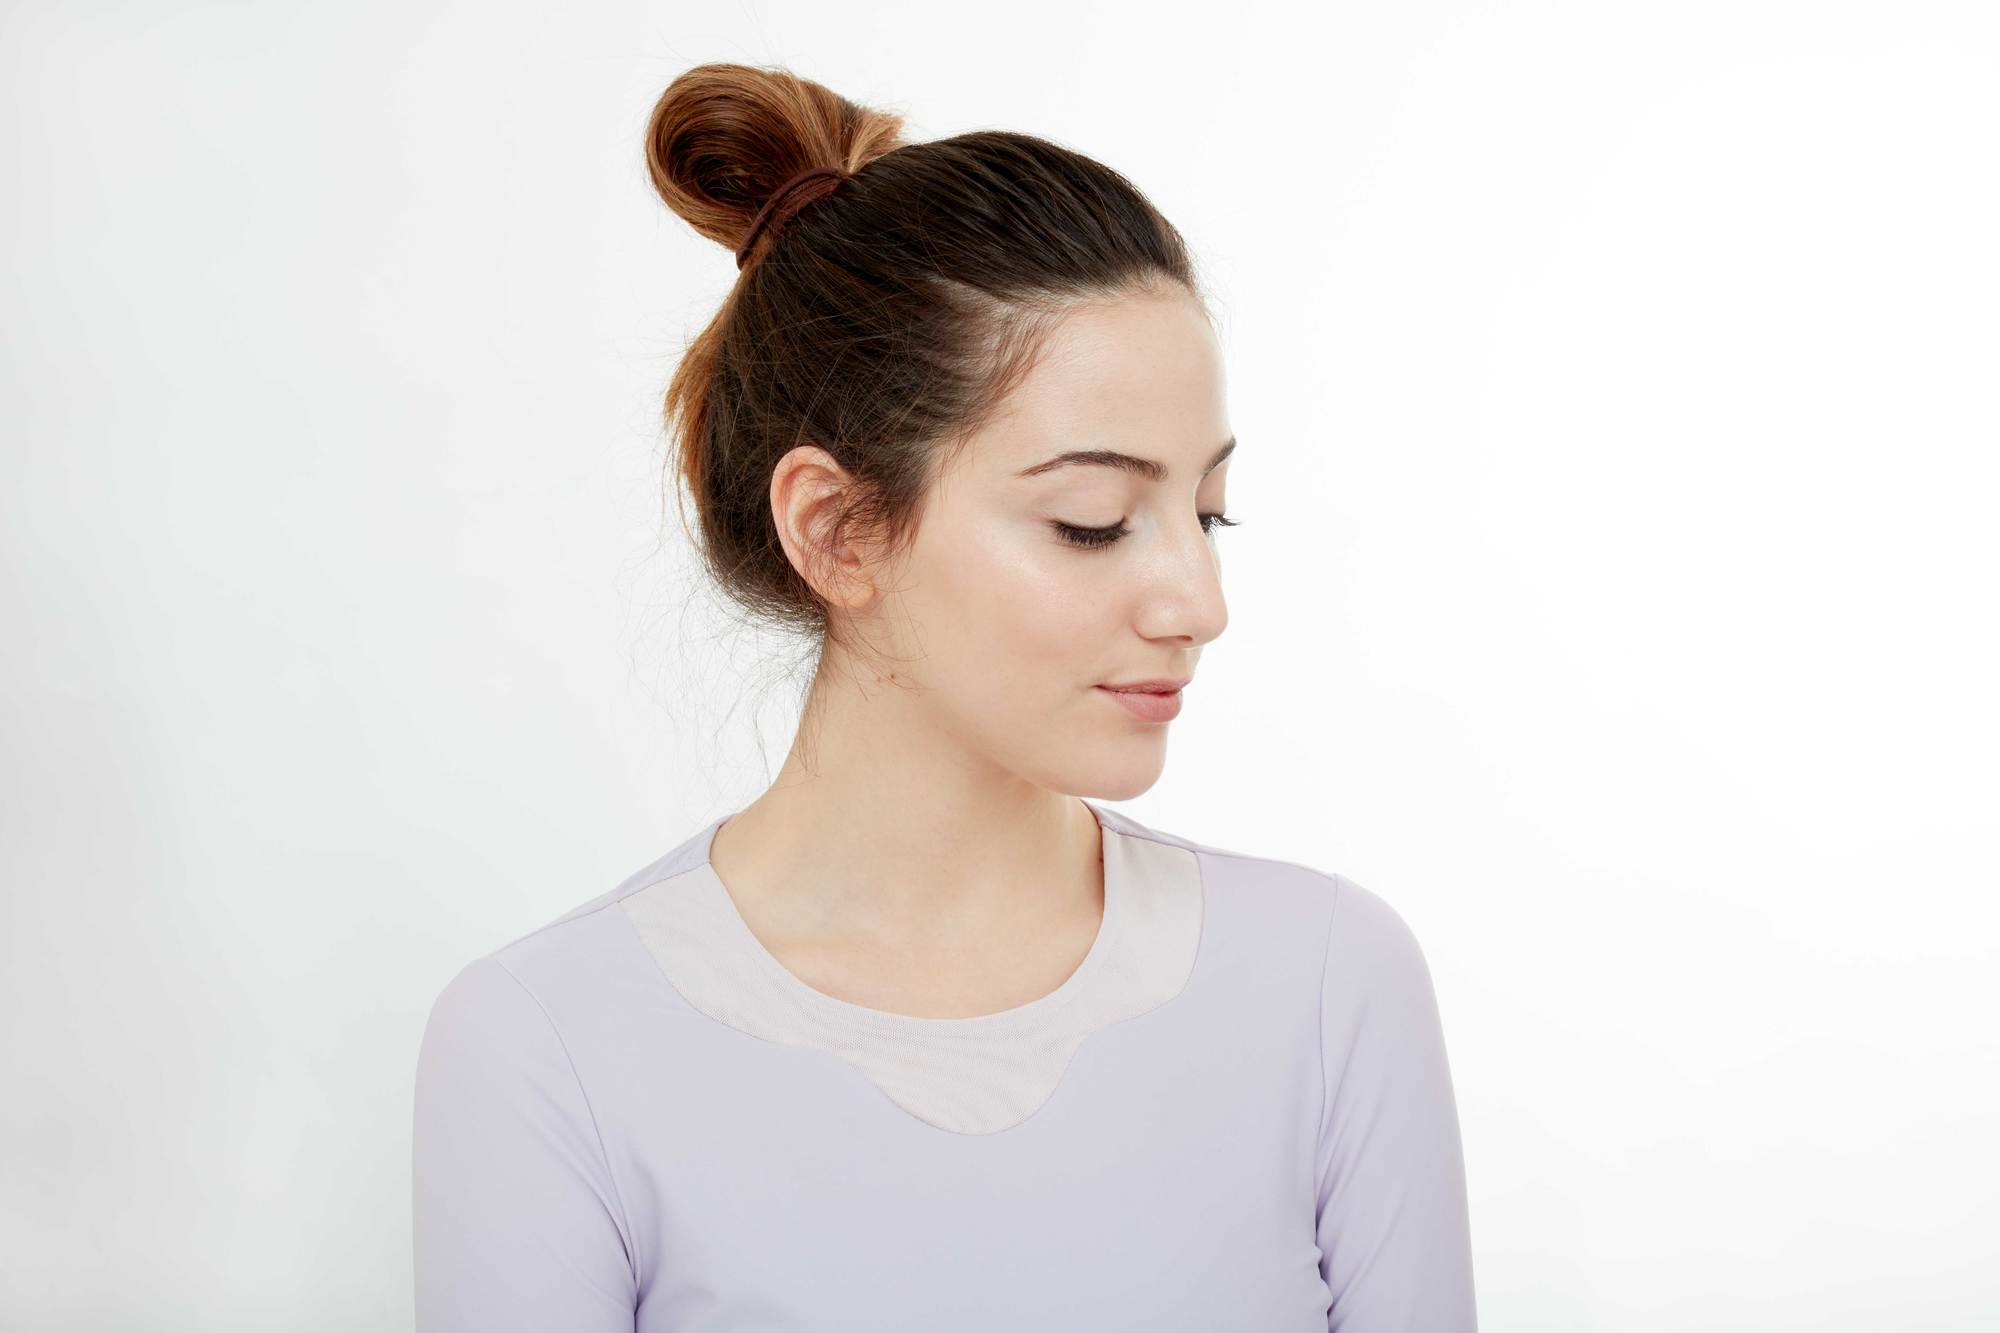 Gym hairstyles for thick hair: Brunette model with long hair tied in a looped bun, wearing a lilac gym top